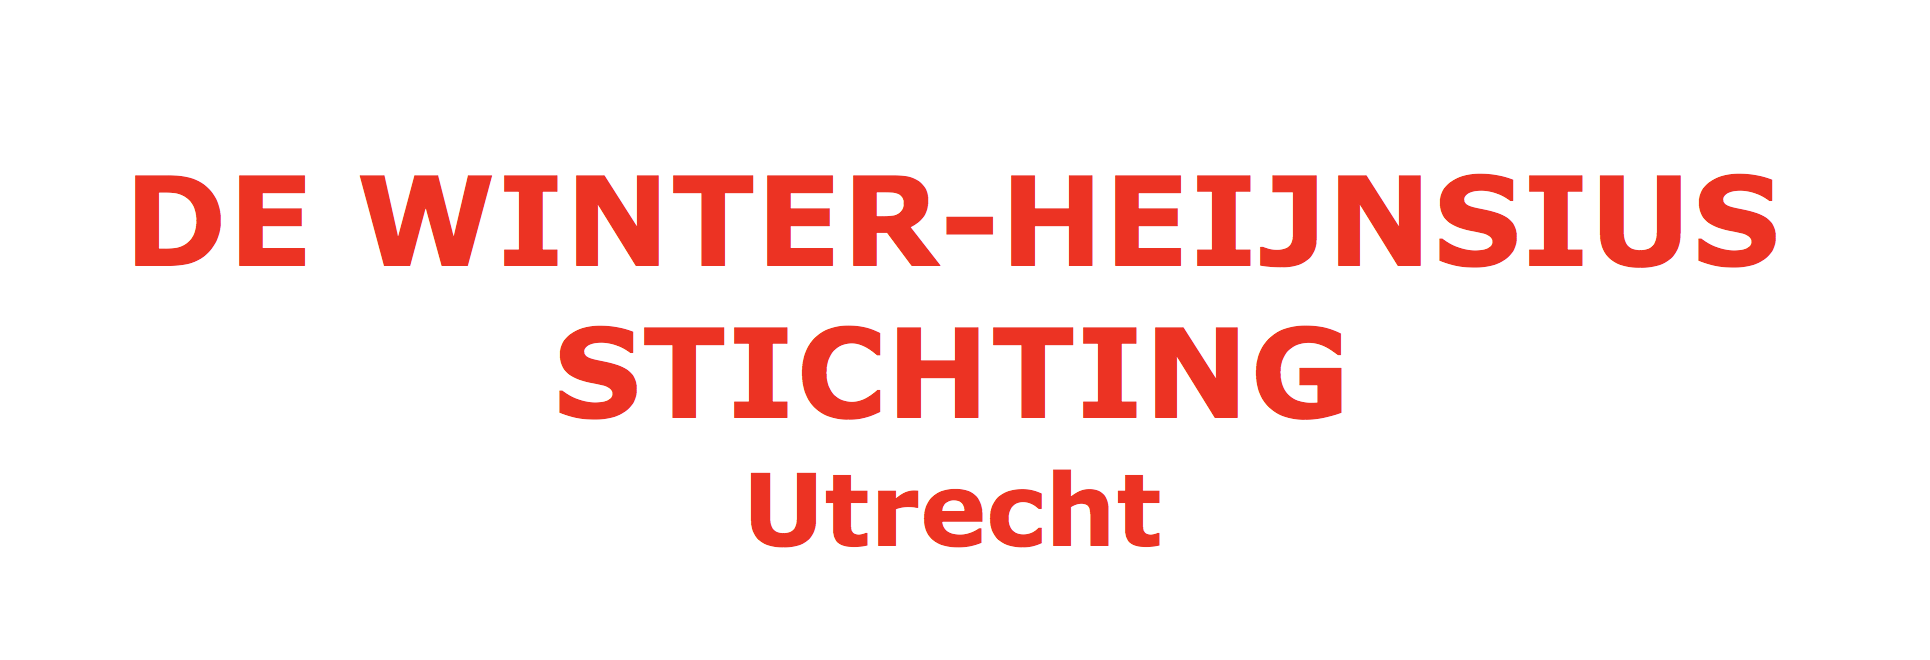 De Winter Heinsius Stichting